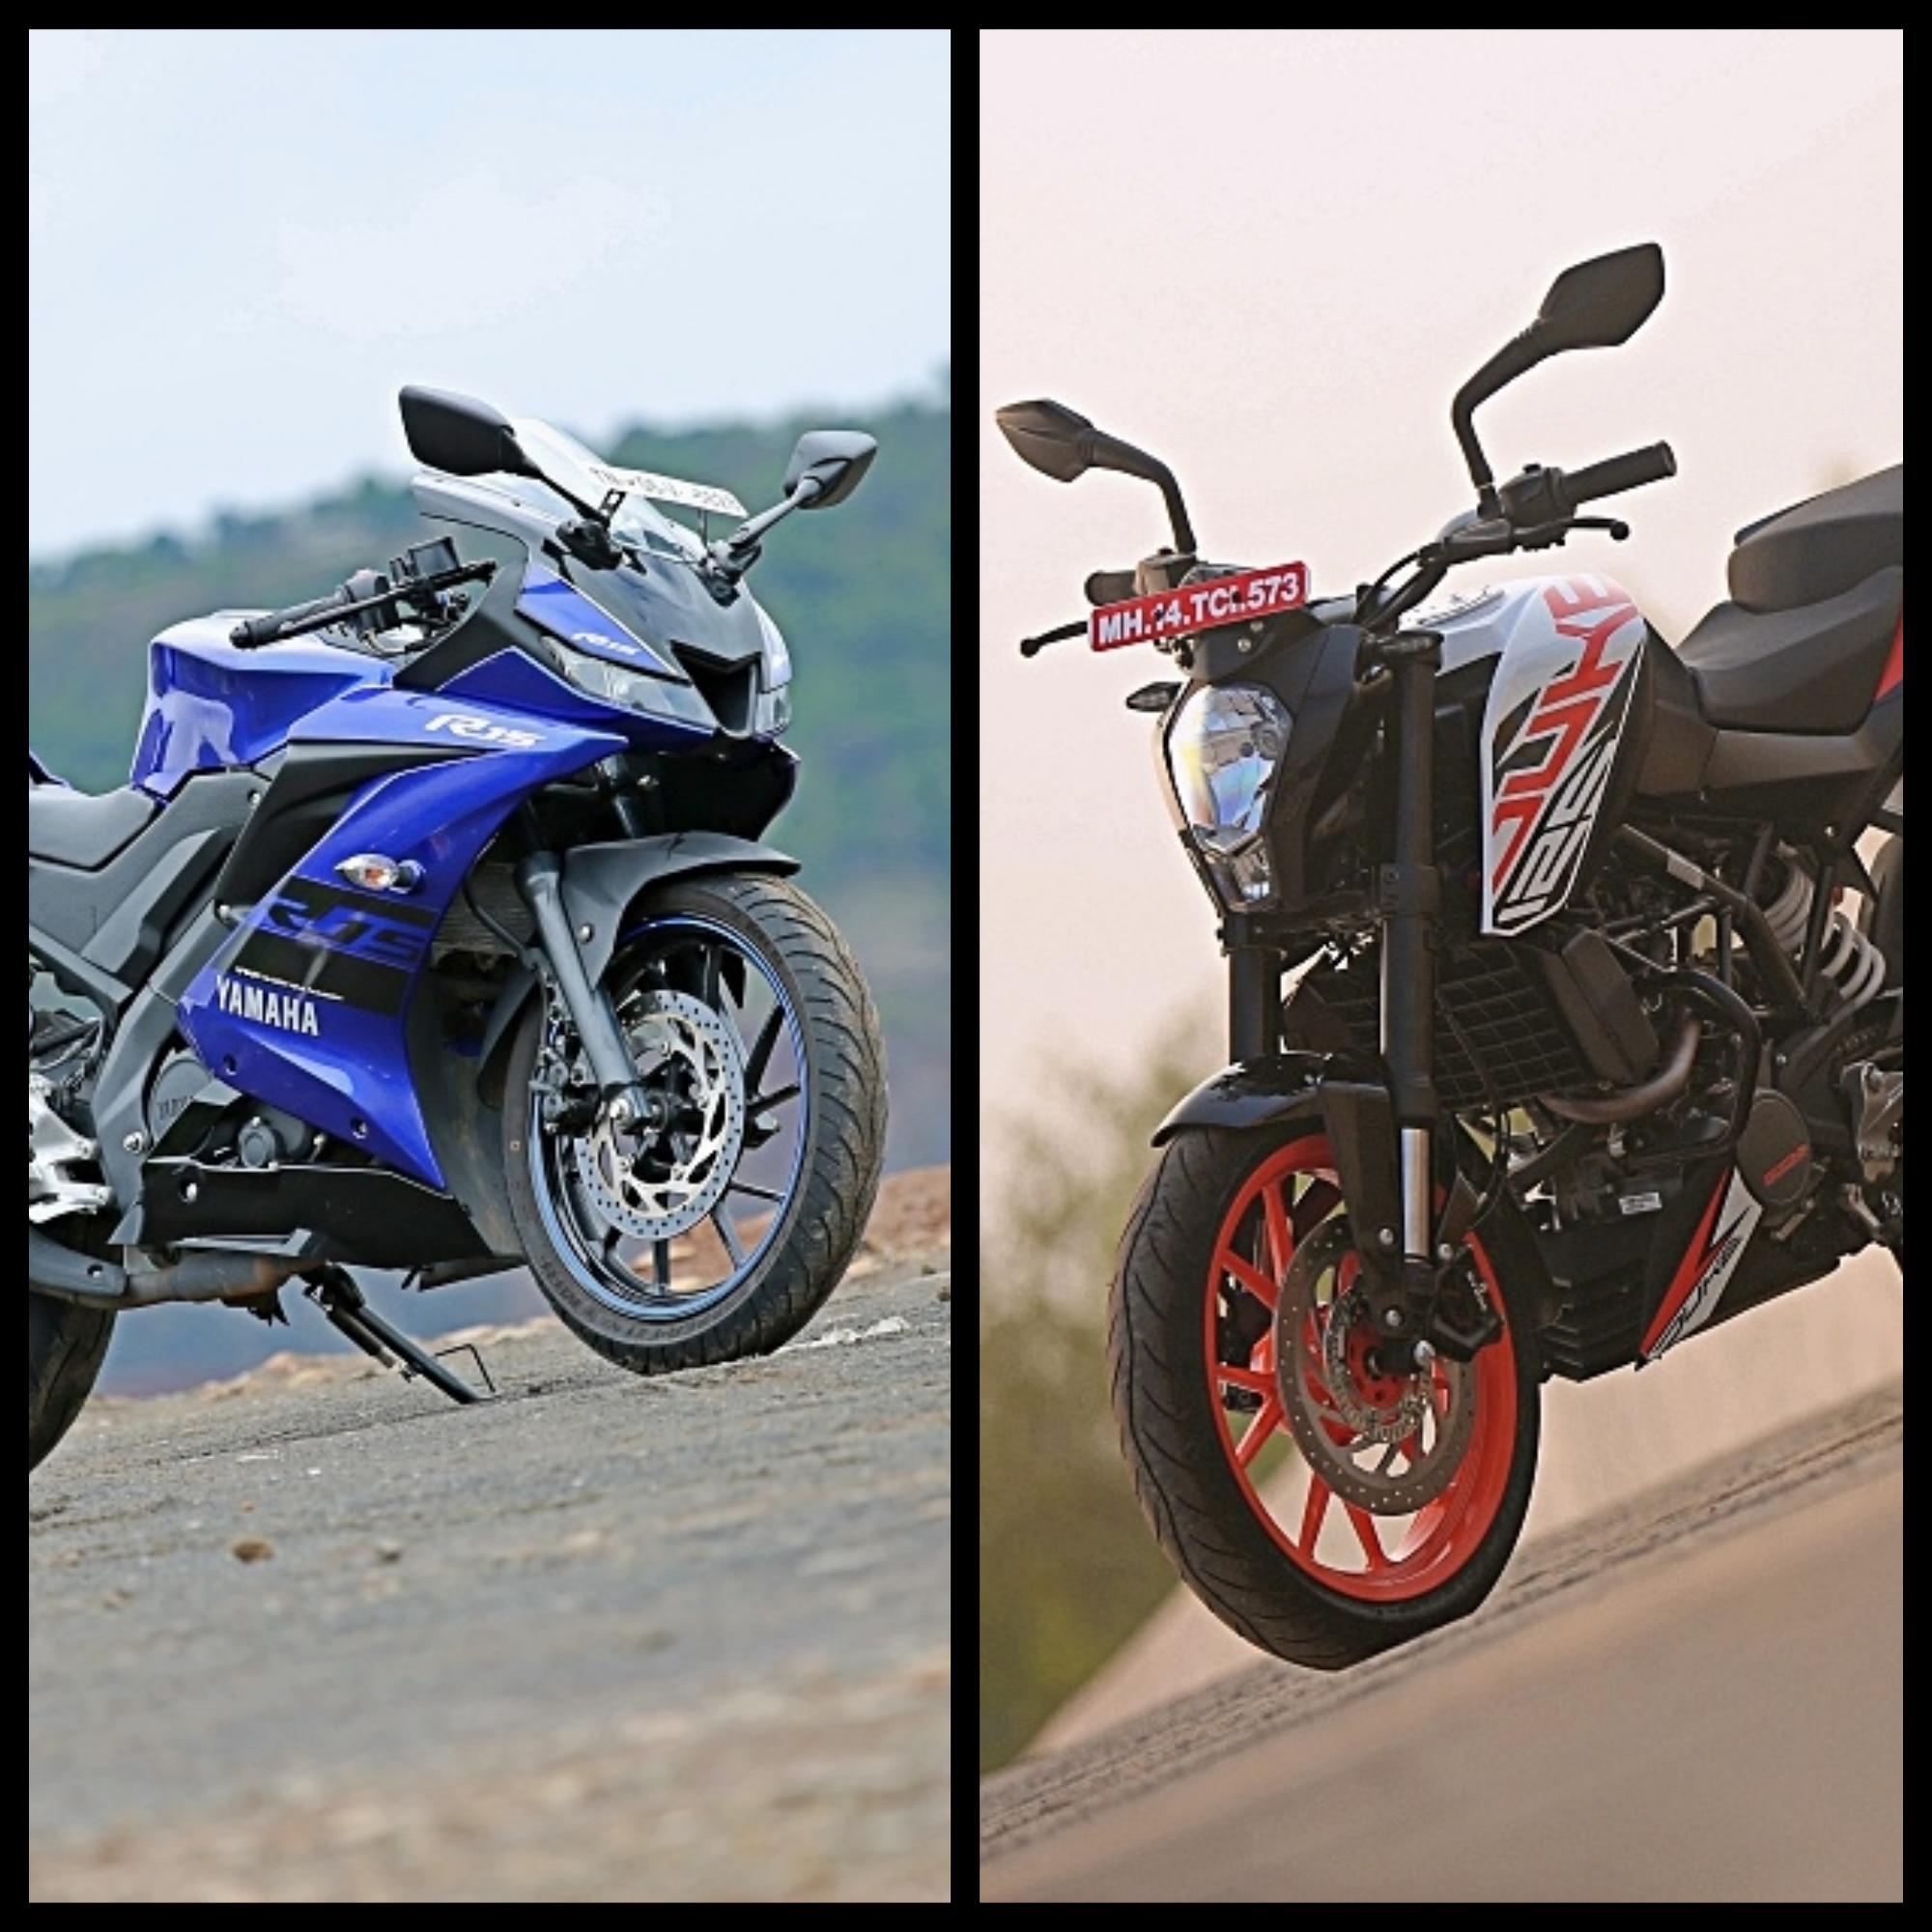 Bajaj Pulsar 220 F vs Yamaha YZF R15 V3 - Know Which is Better